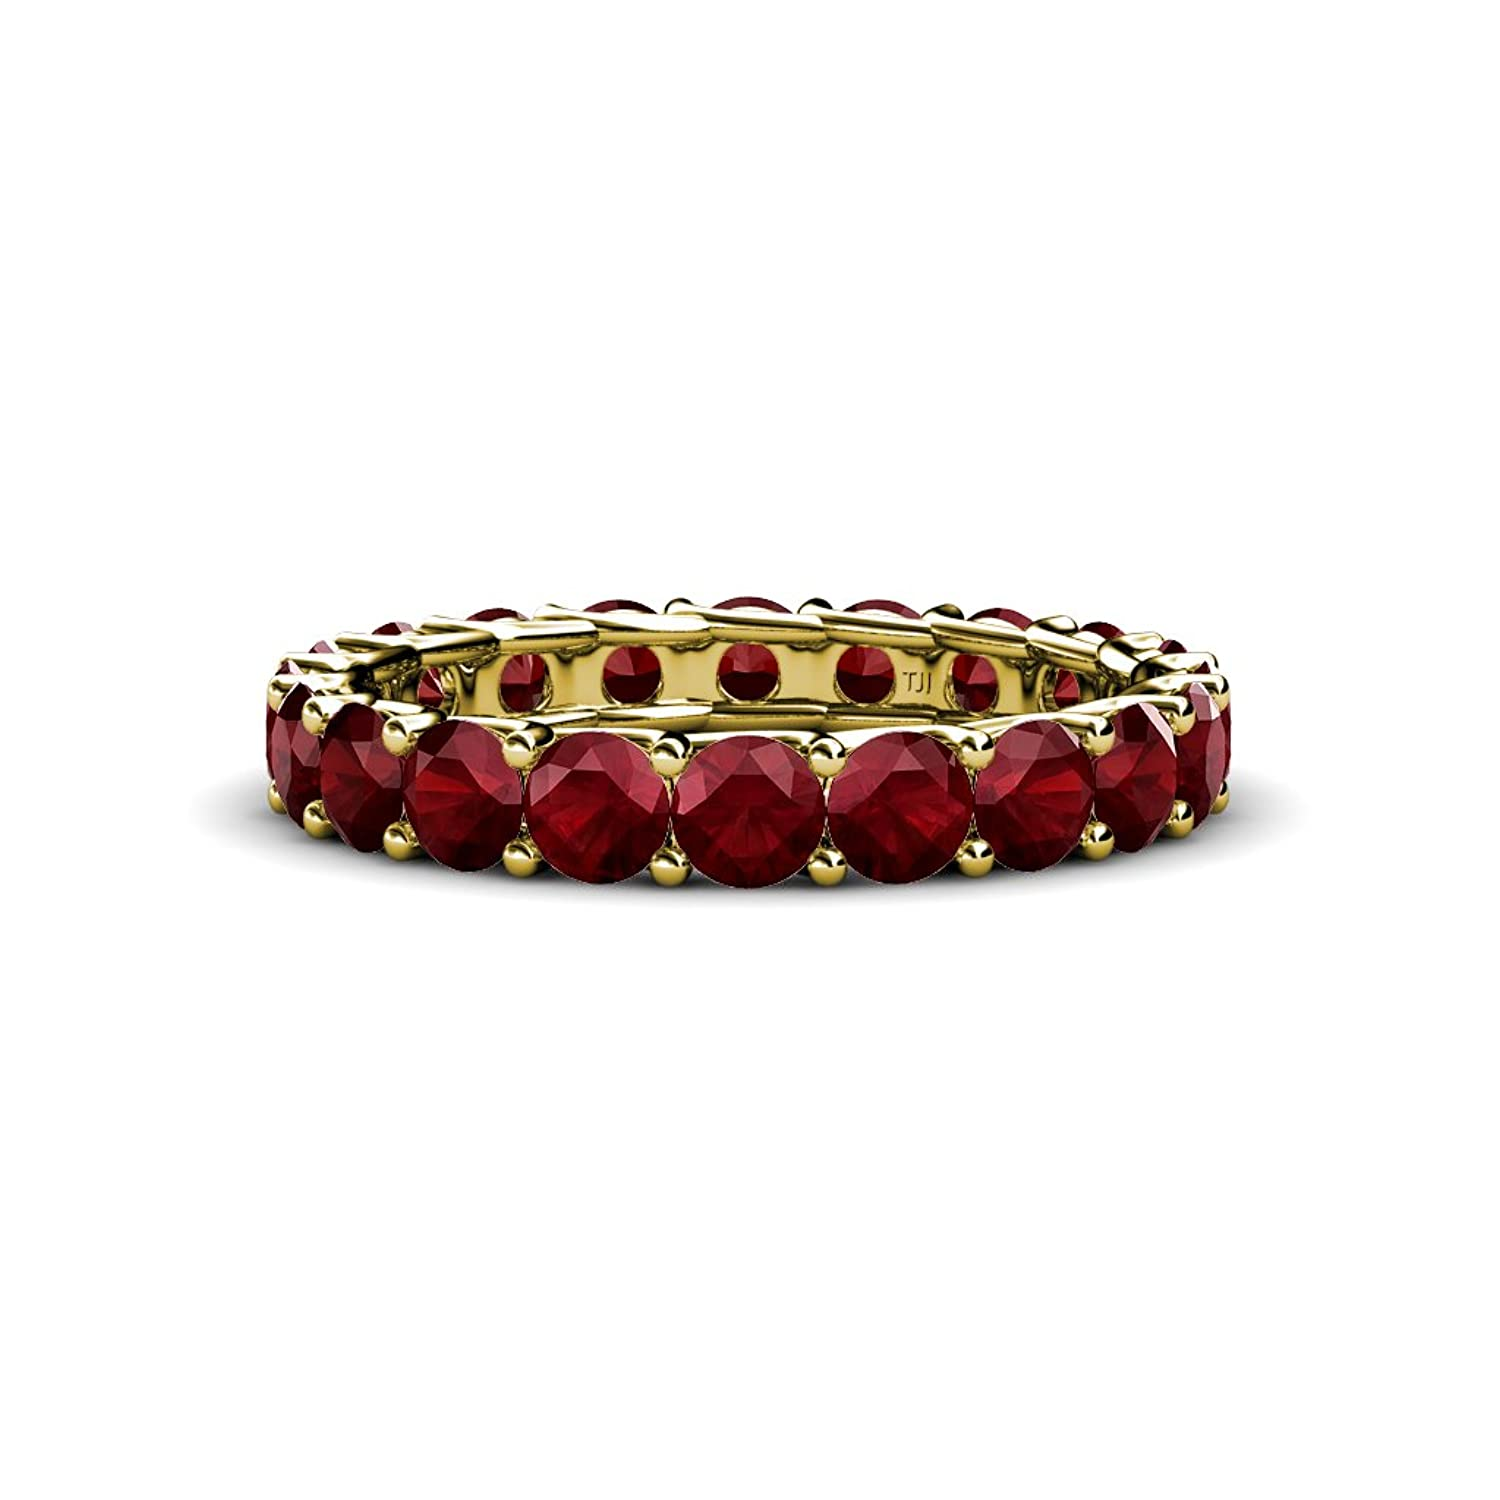 Red Garnet Eternity Band 2.86 ct tw-3.53 ct tw in 14K Gold